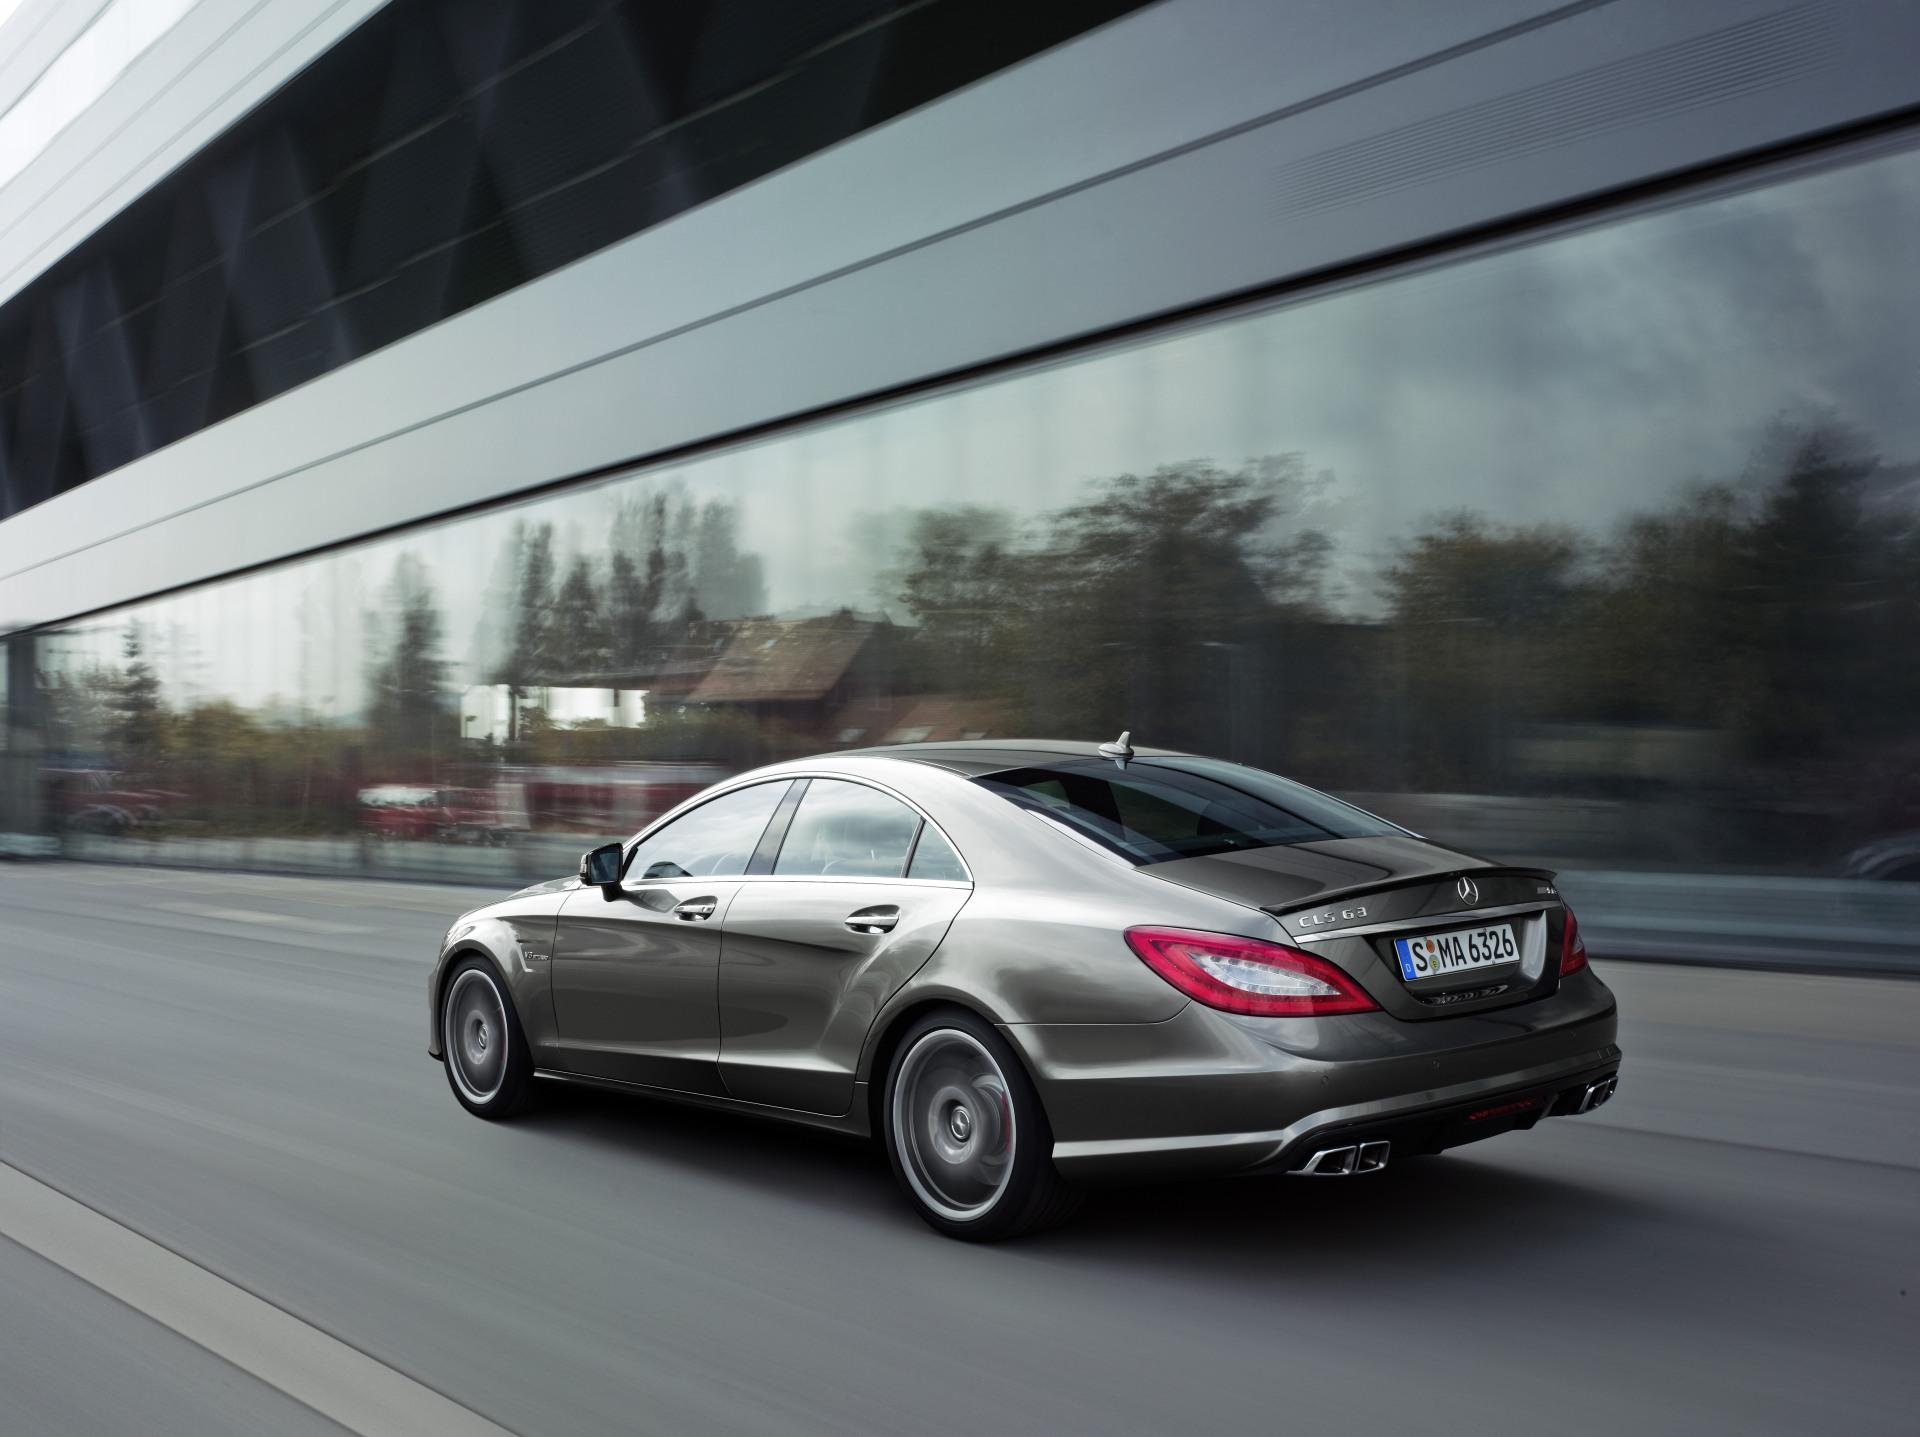 2012 mercedes benz cls63 amg image photo 6 of 24 for Mercedes benz cls63 amg price